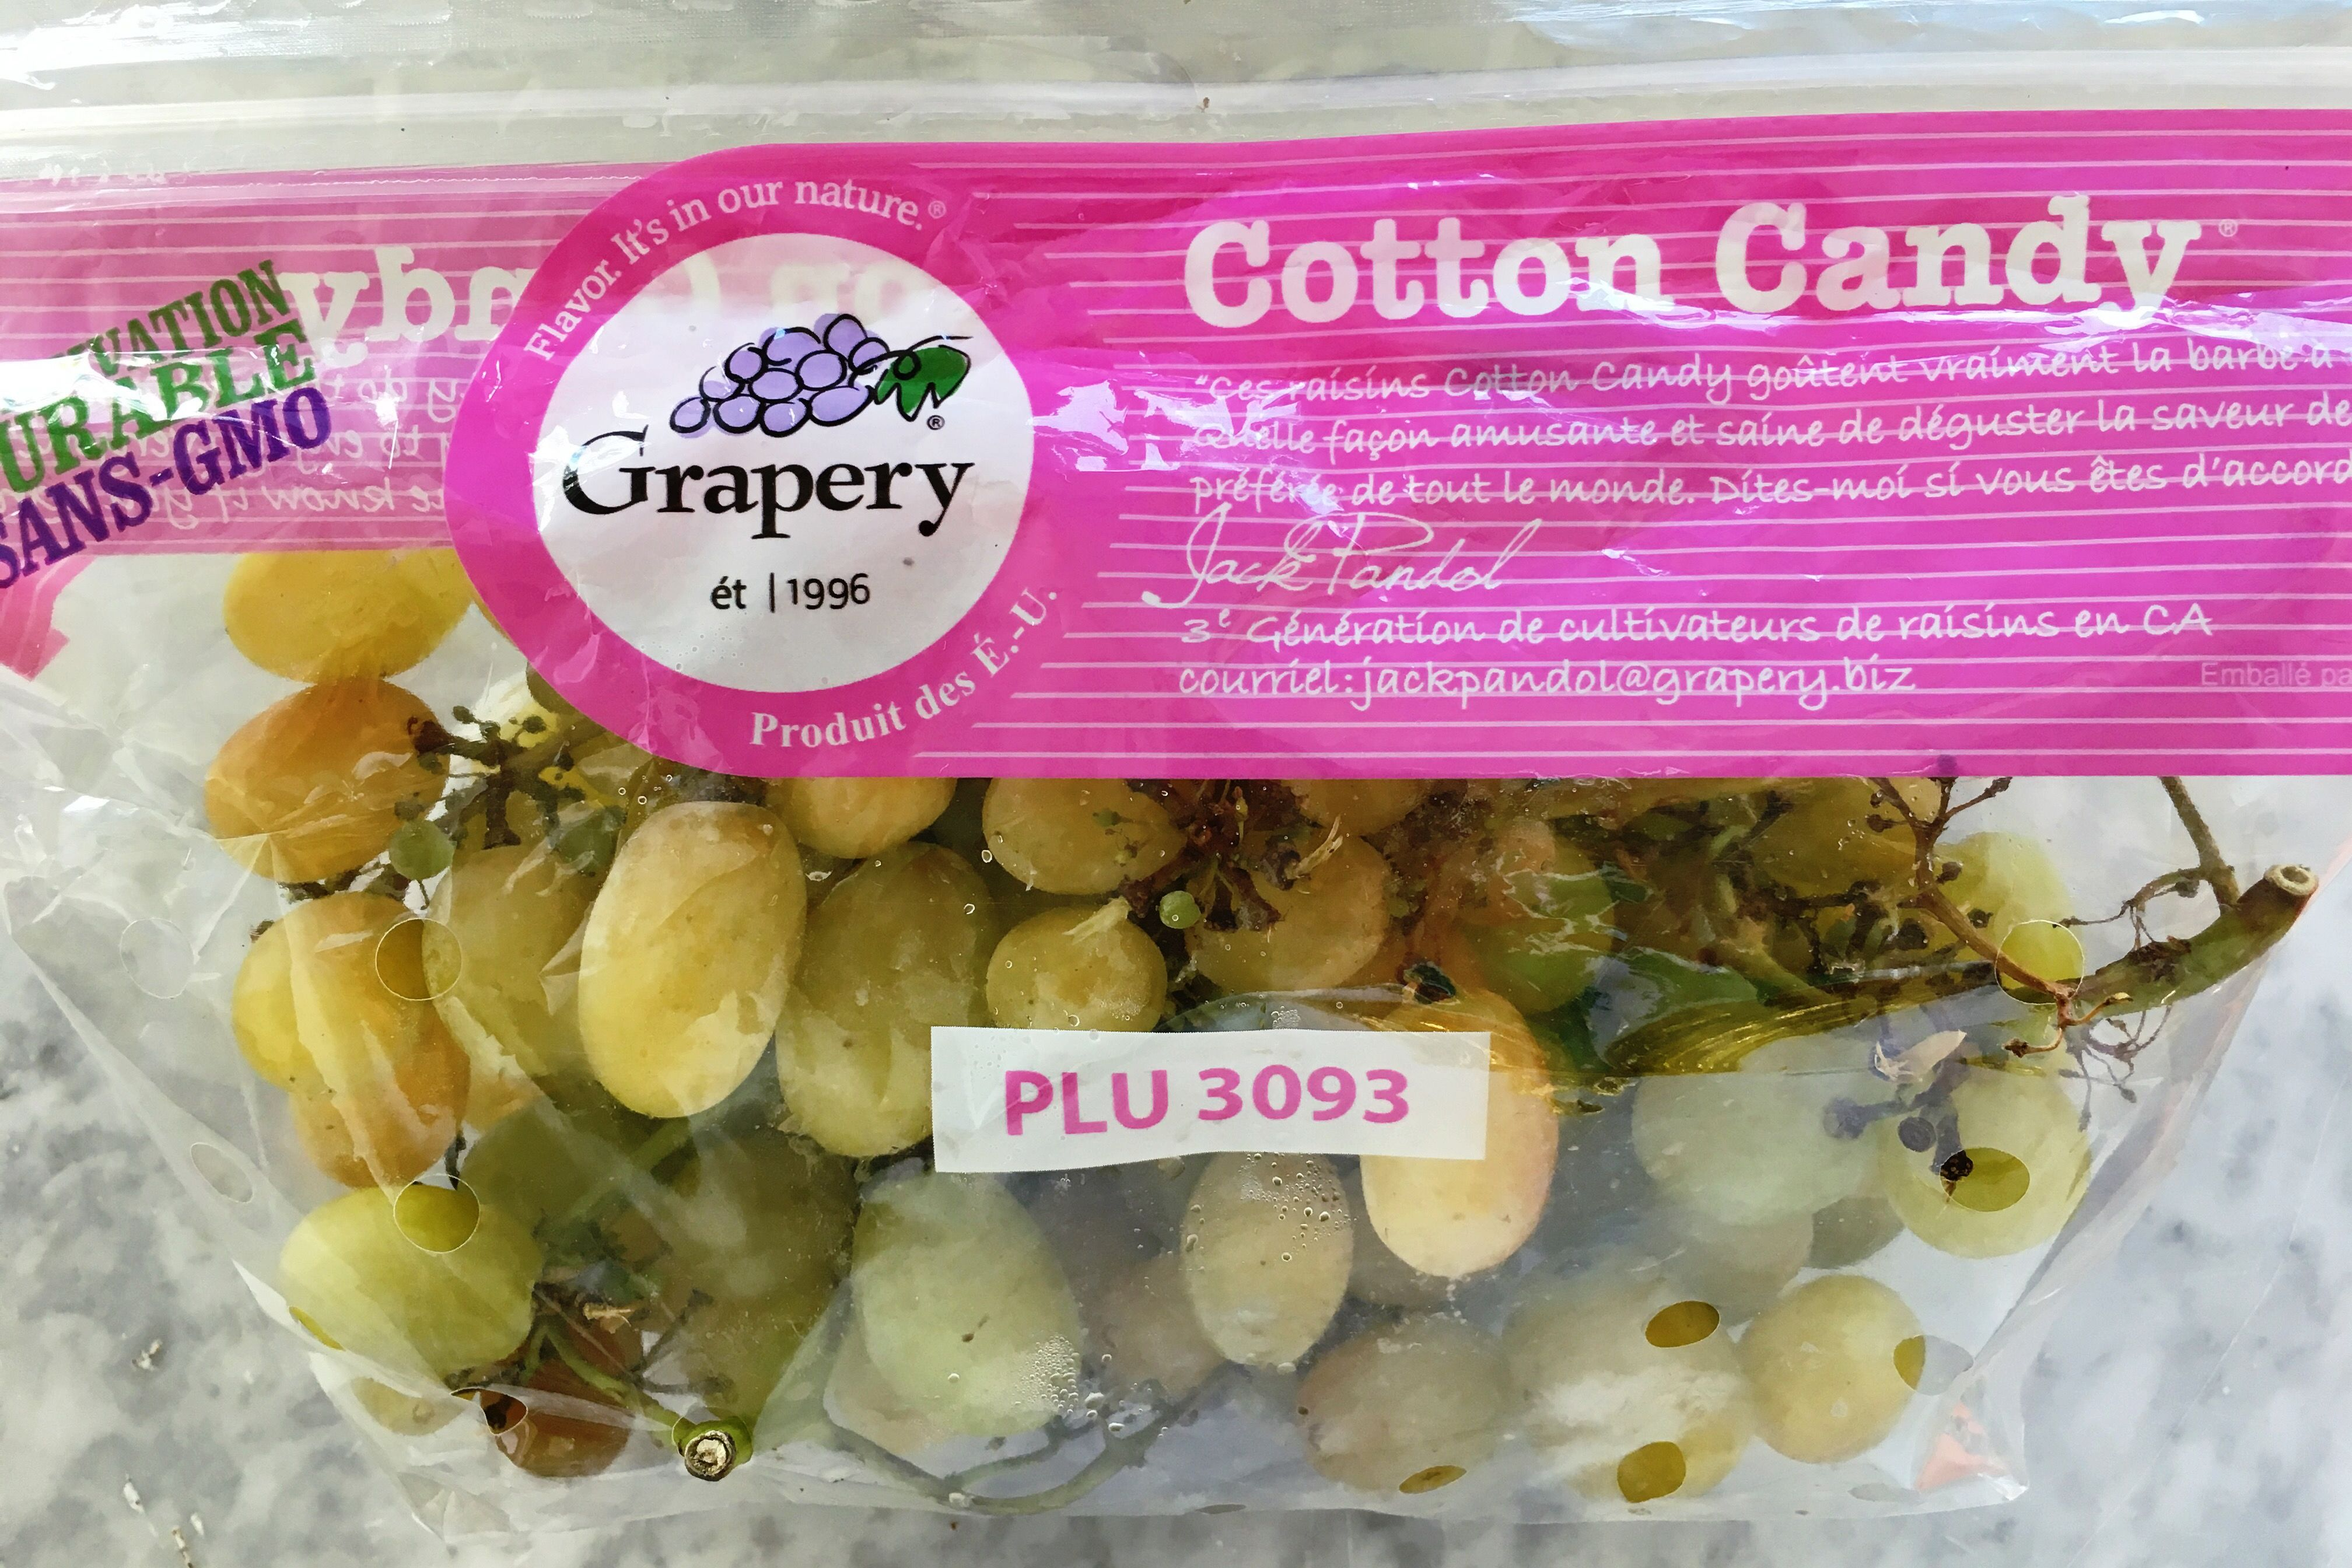 Costco Brings Back Magical Cotton Candy Grapes Just in Time for Summer